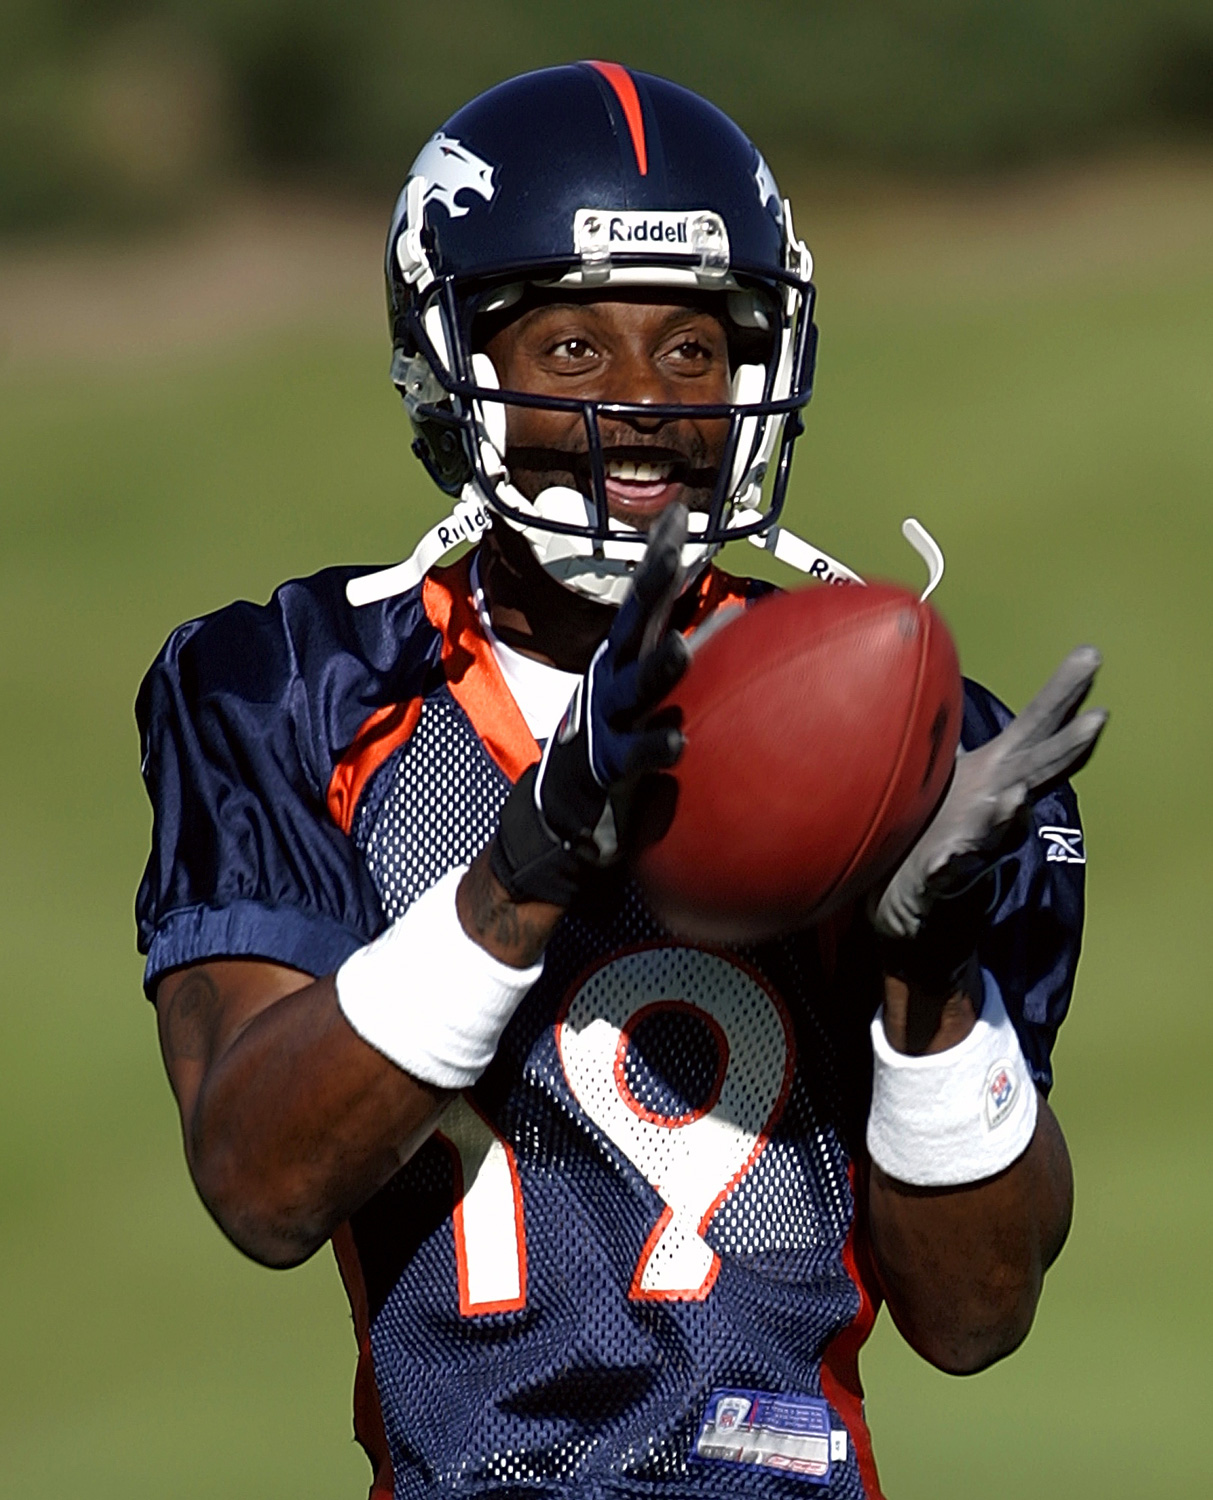 Jerry Rice as a Bronco